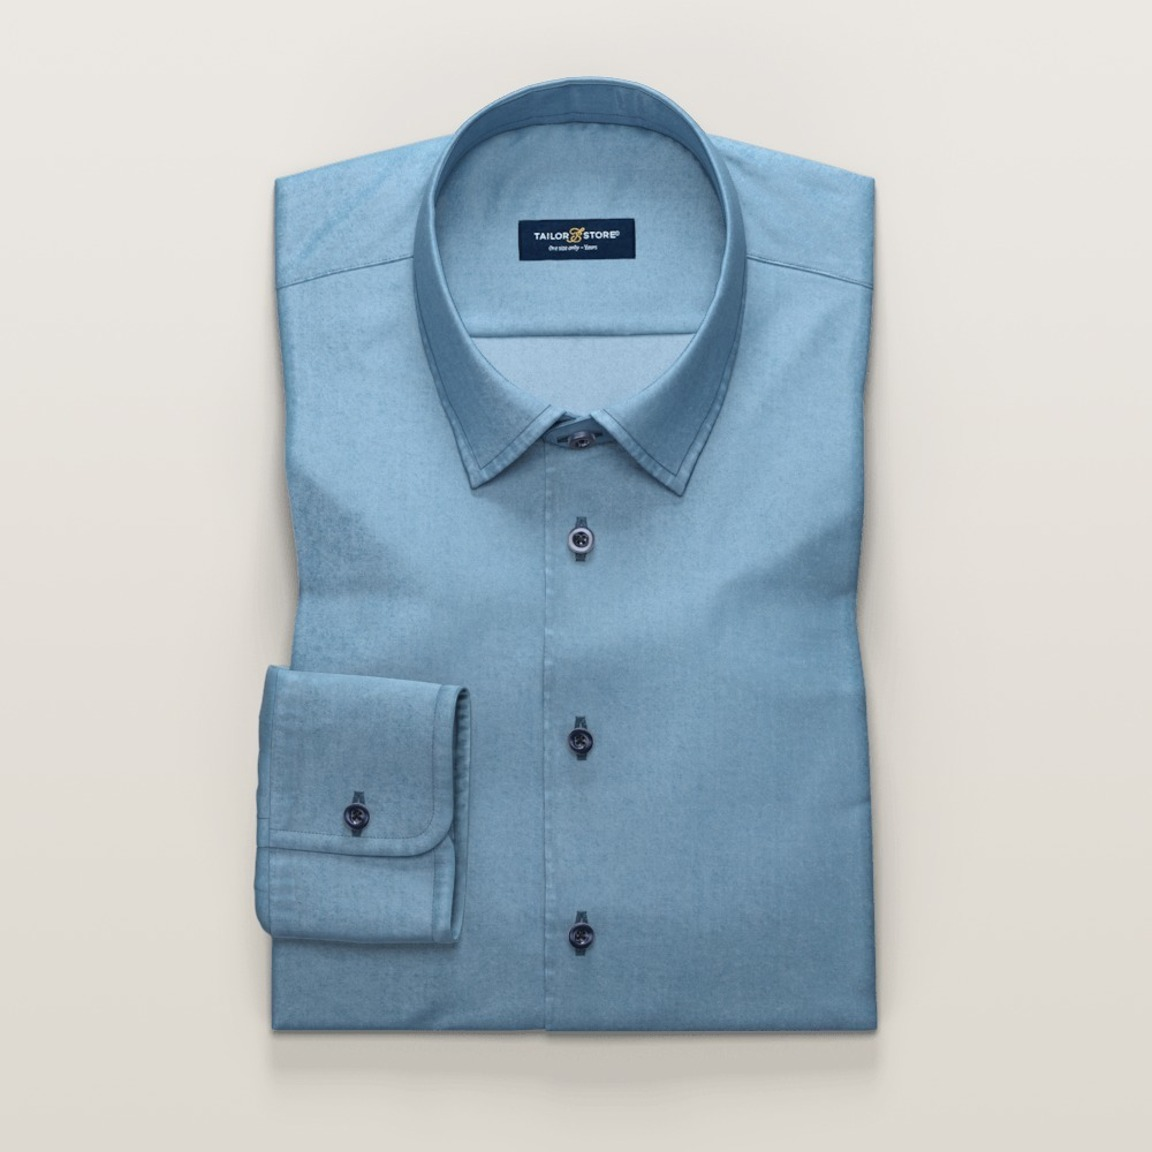 Light blue classic denim dress shirt